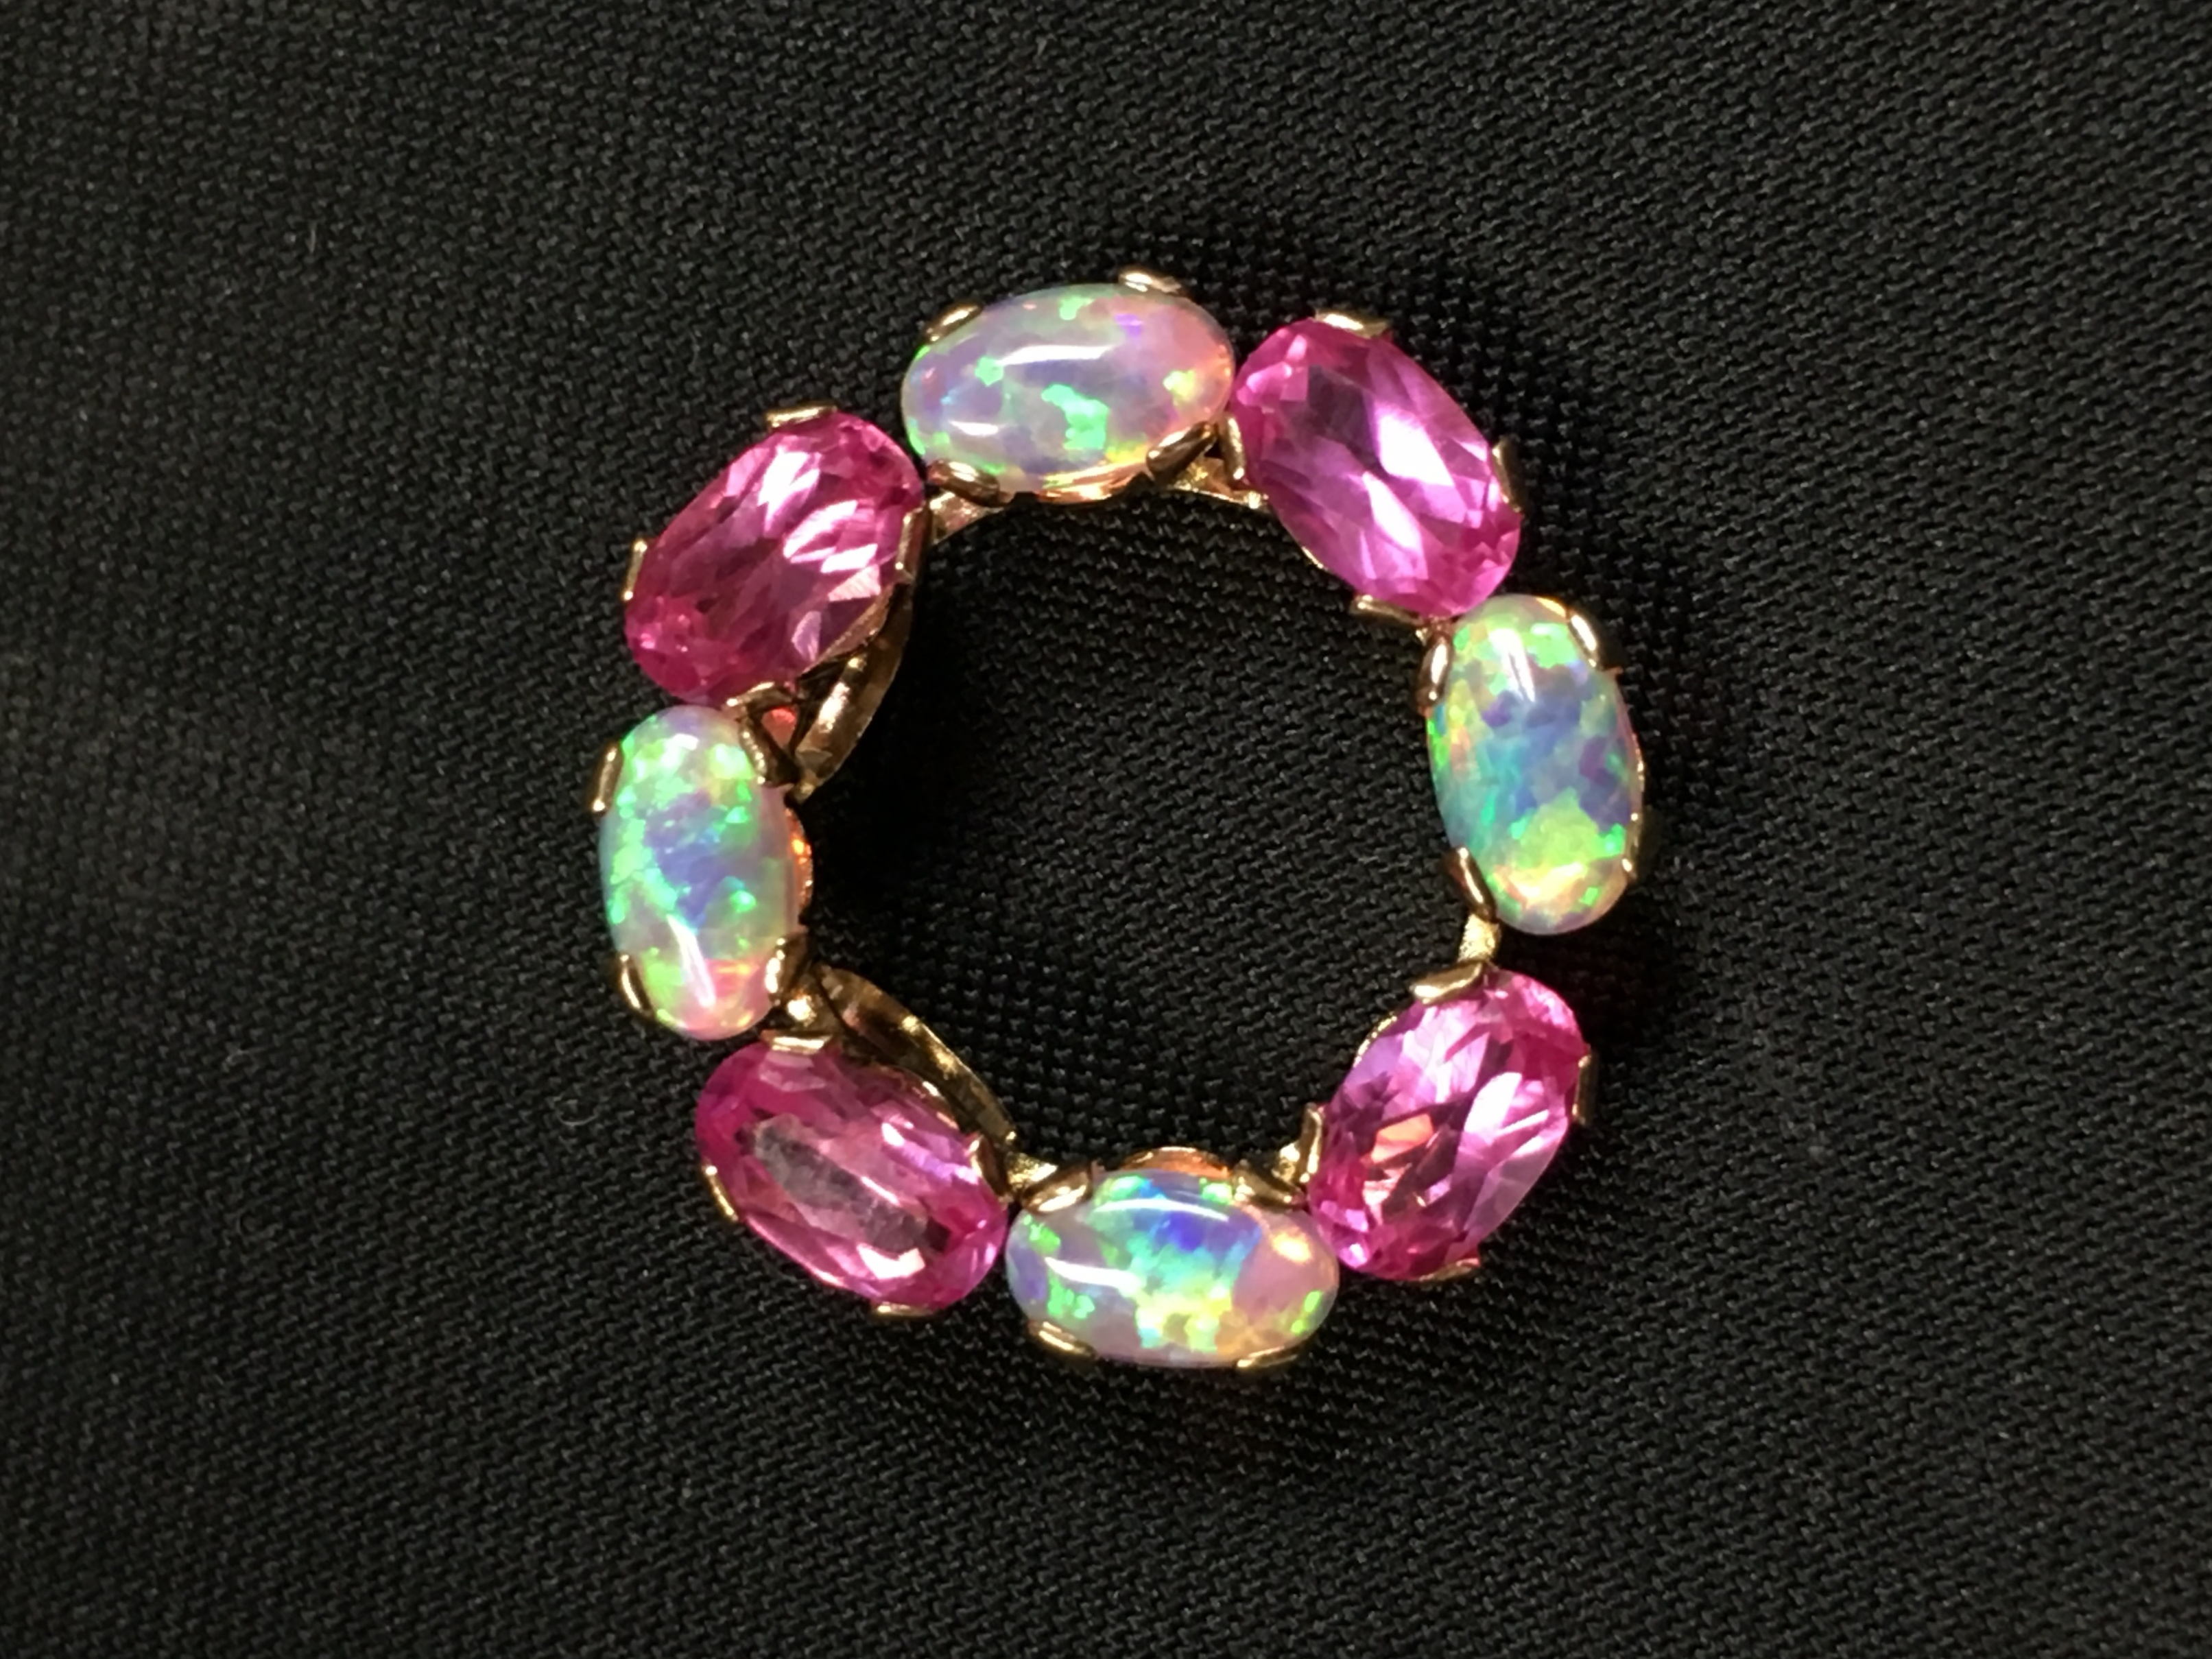 10KT YELLOW GOLD OPAL LIKE STONE AND PINK STONE CHARM